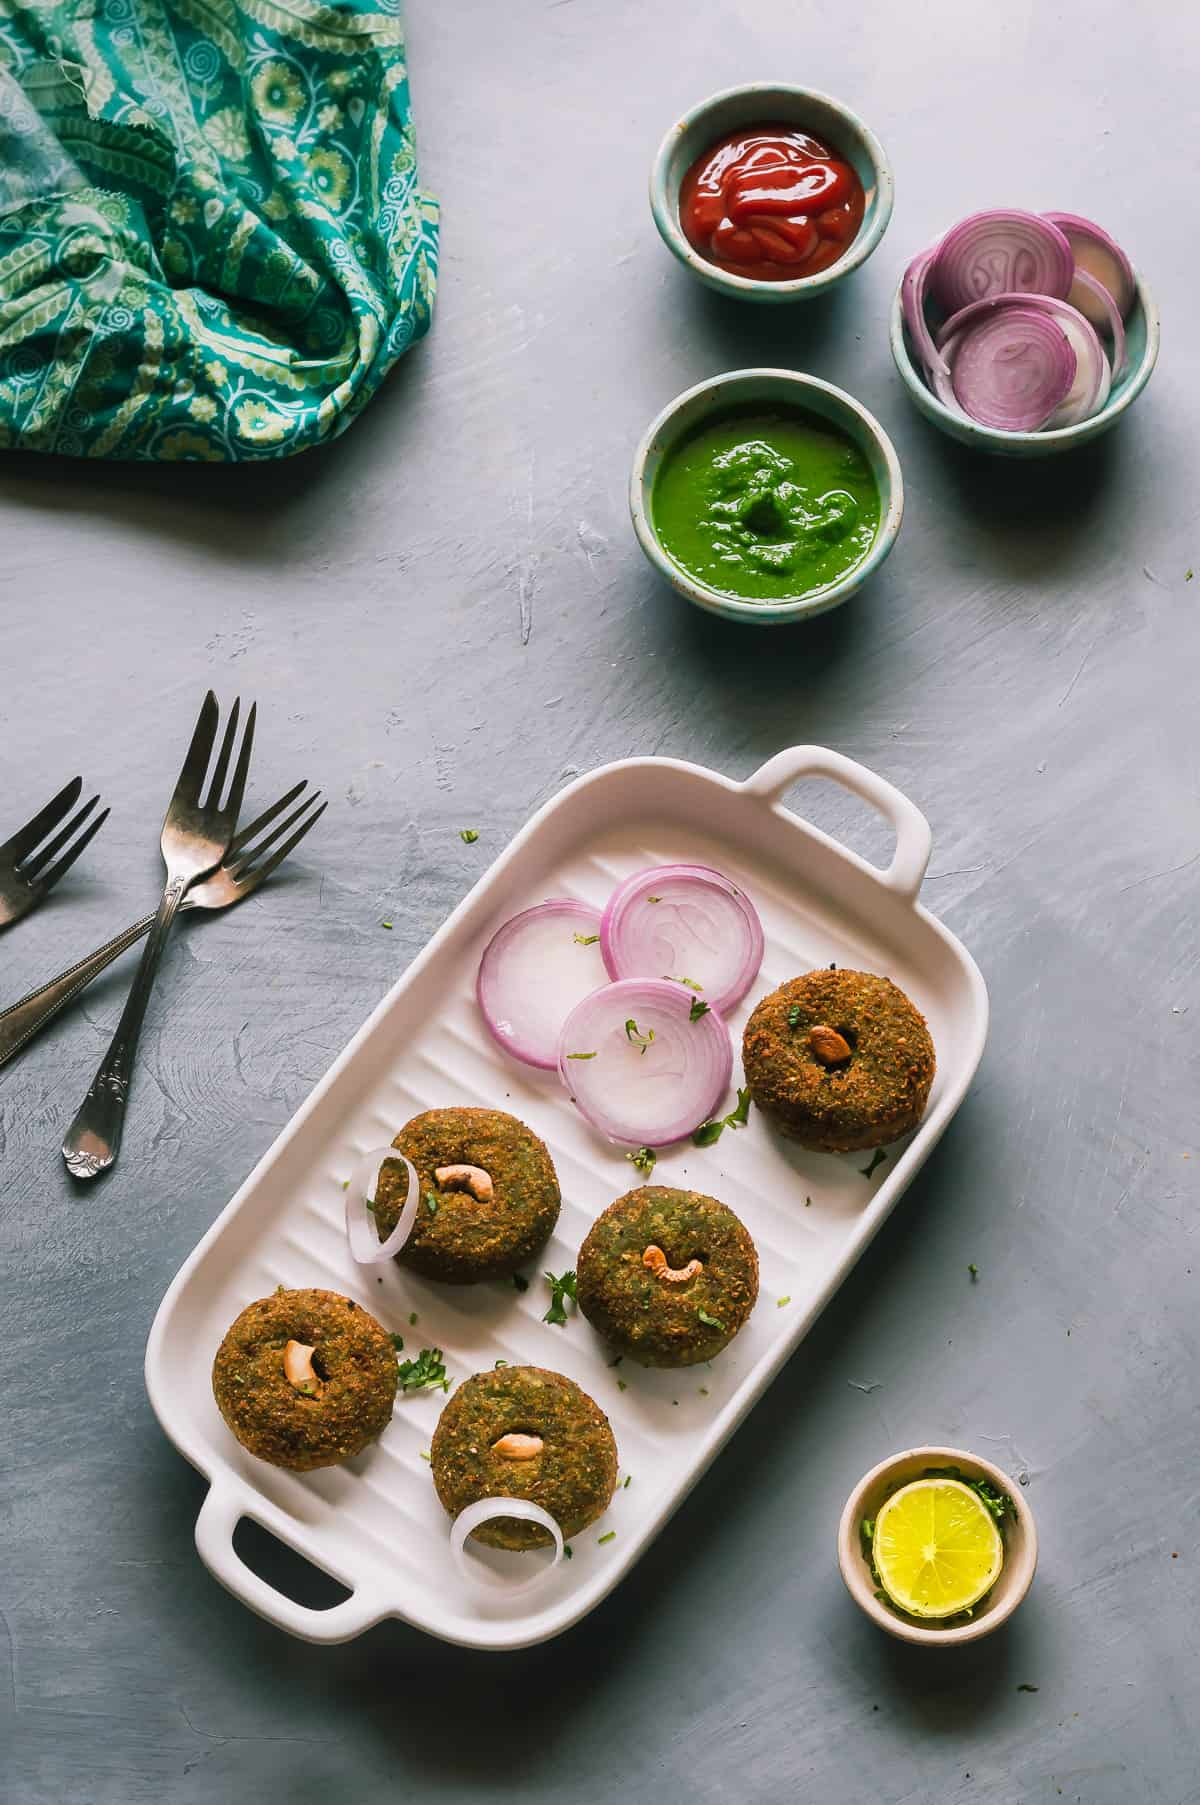 Hara bhara kabab are soft patties made with pureed spinach and peas. Serve them as appetisers or as an evening snack along with hot piping chai or tea.